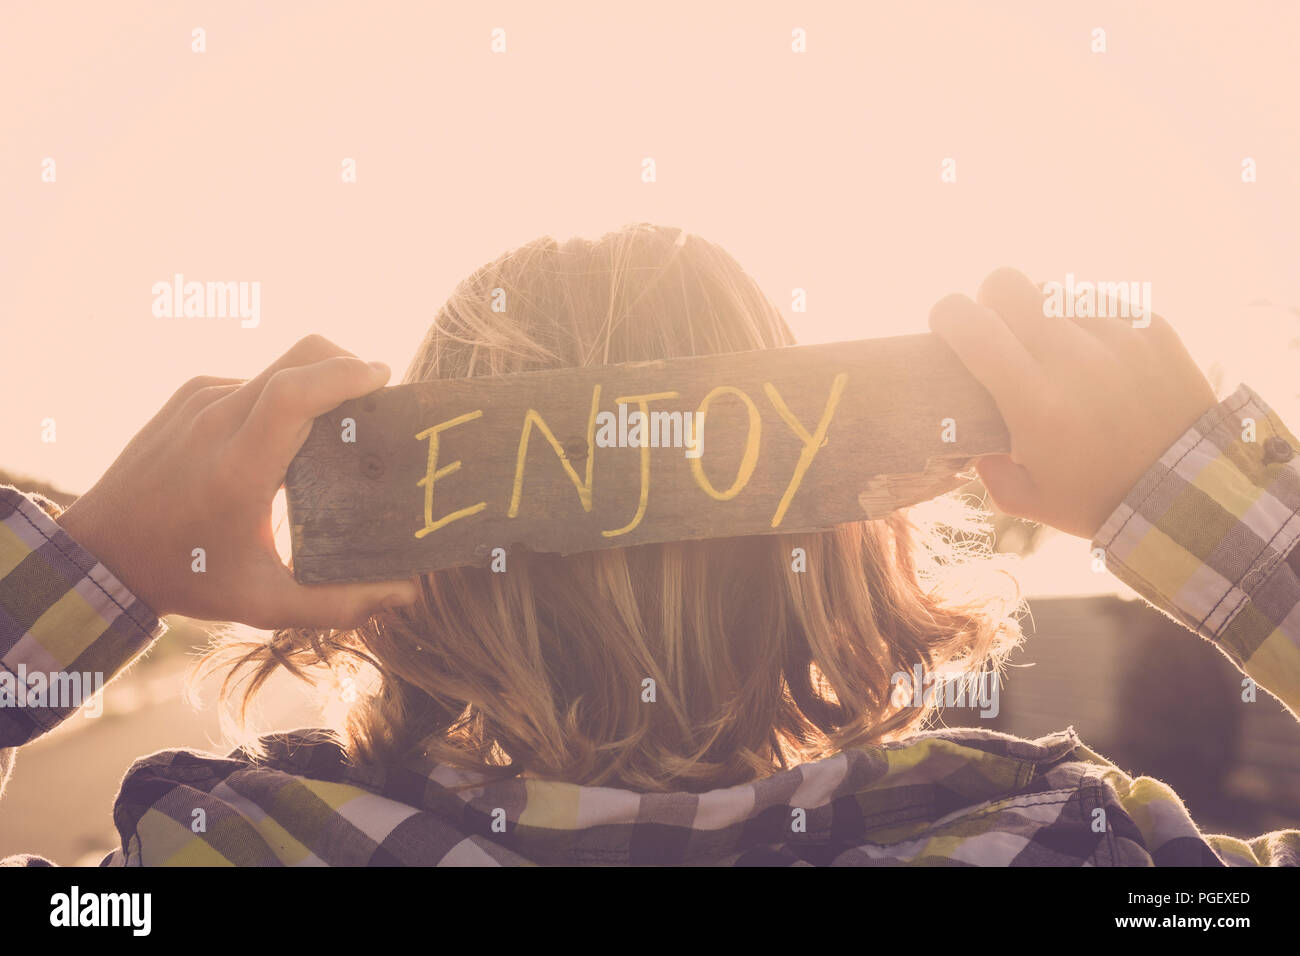 blonde people young teenager with enjoy written on a natural piace of recycled wood. feeling and golden sunset atmosphere image for positive life and  - Stock Image